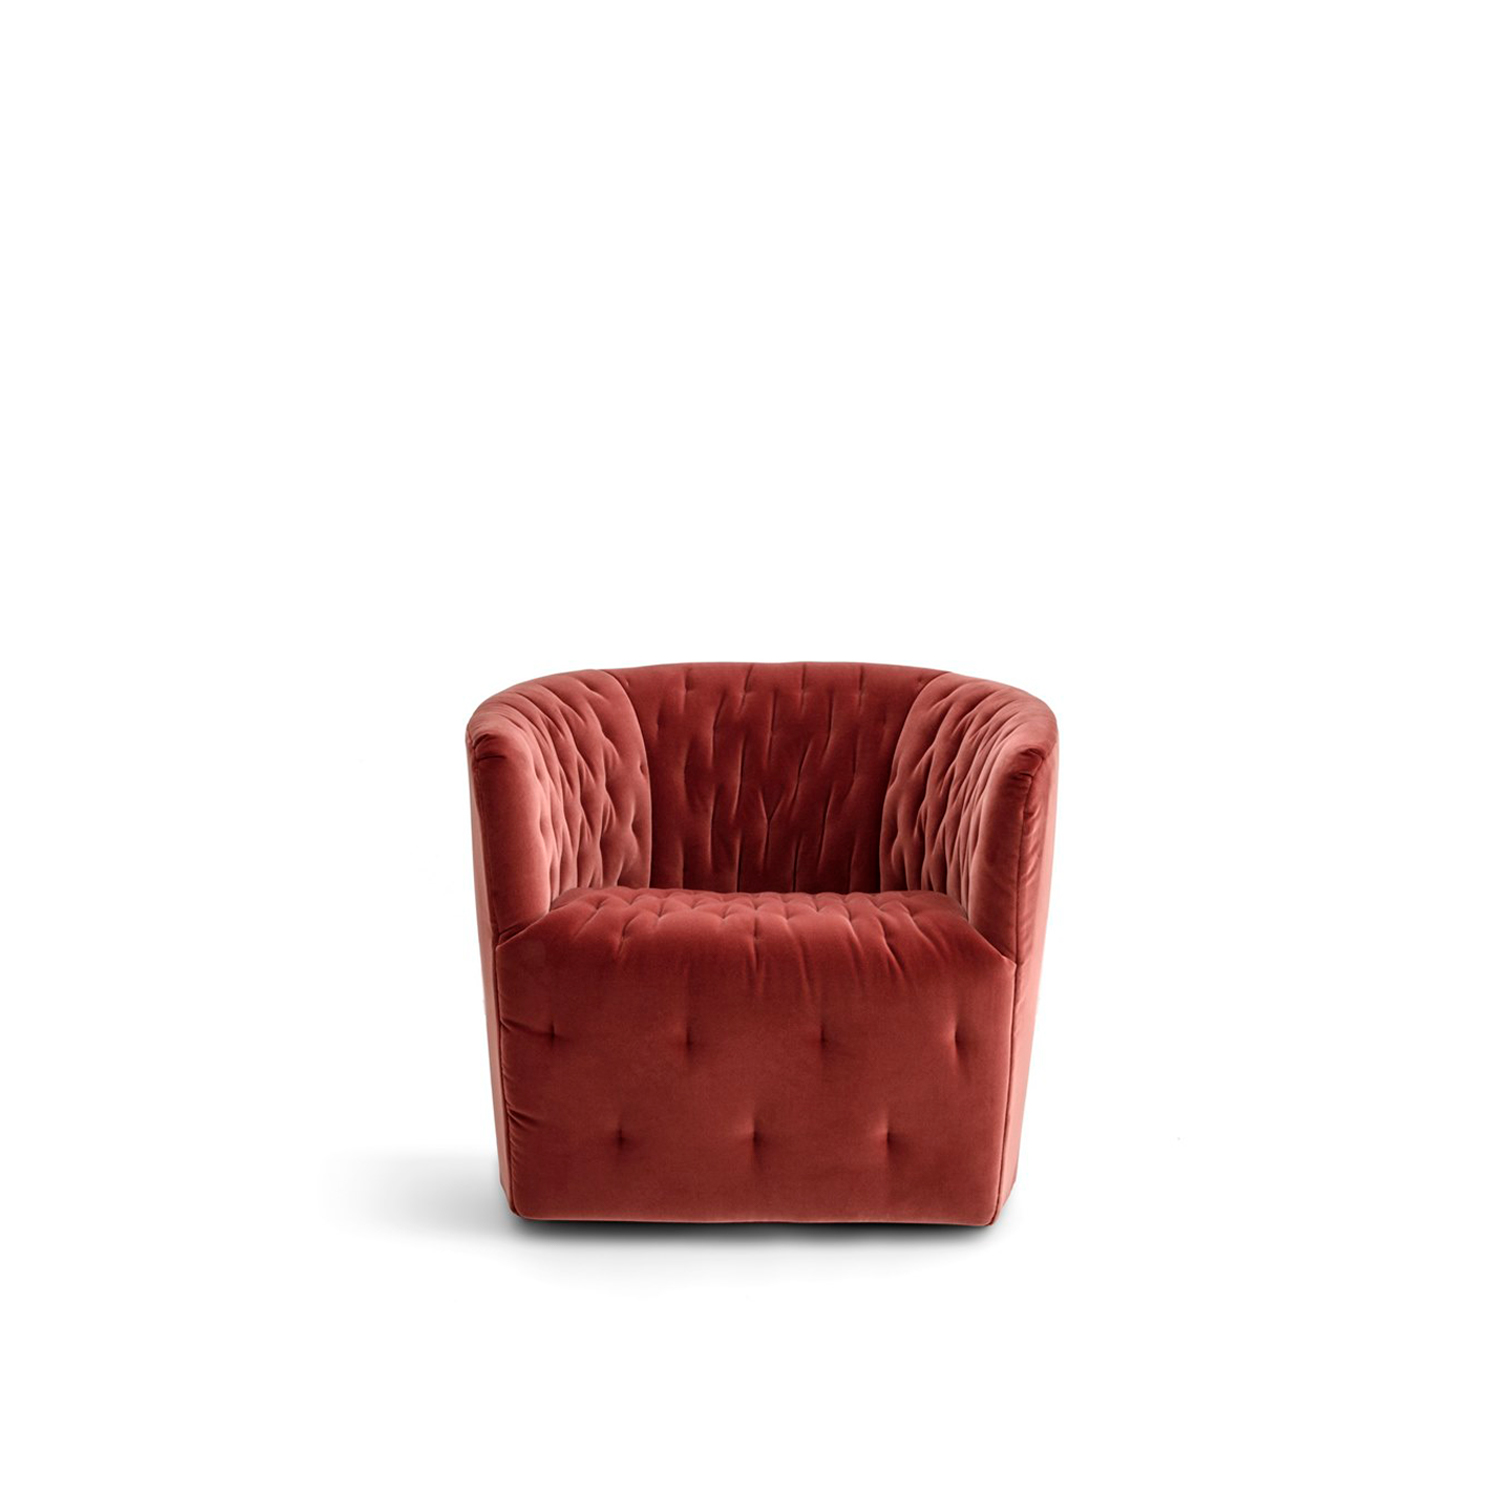 Amélie Lounge Armchair - Delightfully pretty, the Amélie tub chair conjures up visions of French haute couture. The inner curves have been deliberately emphasised by a clever hand-quilted patterning effect. Compact yet with a strong appeal, Amélie would be an attractive addition to any space where seating is required. Customers can choose to order the quilted stitching in a contrasting colour, offering endless possibilities to suit personal choice. Tone-on-tone for Amélie: the latest hues give prominence to its graceful lines. Also available with a swivel base, fully removable covers.  Additional removable cover is available, please enquire for prices.  Materials Structure in cold-cured polyurethane foam on a metal core, covered with velfodera on a resin-coated backing 100gr/sqm. Seat filling in polyurethane foam, covered with polyurethane-backed velveteen. Feet in black ABS, h 25 mm. The armchair is available with a rotating glossy chrome finish drawn base. | Matter of Stuff